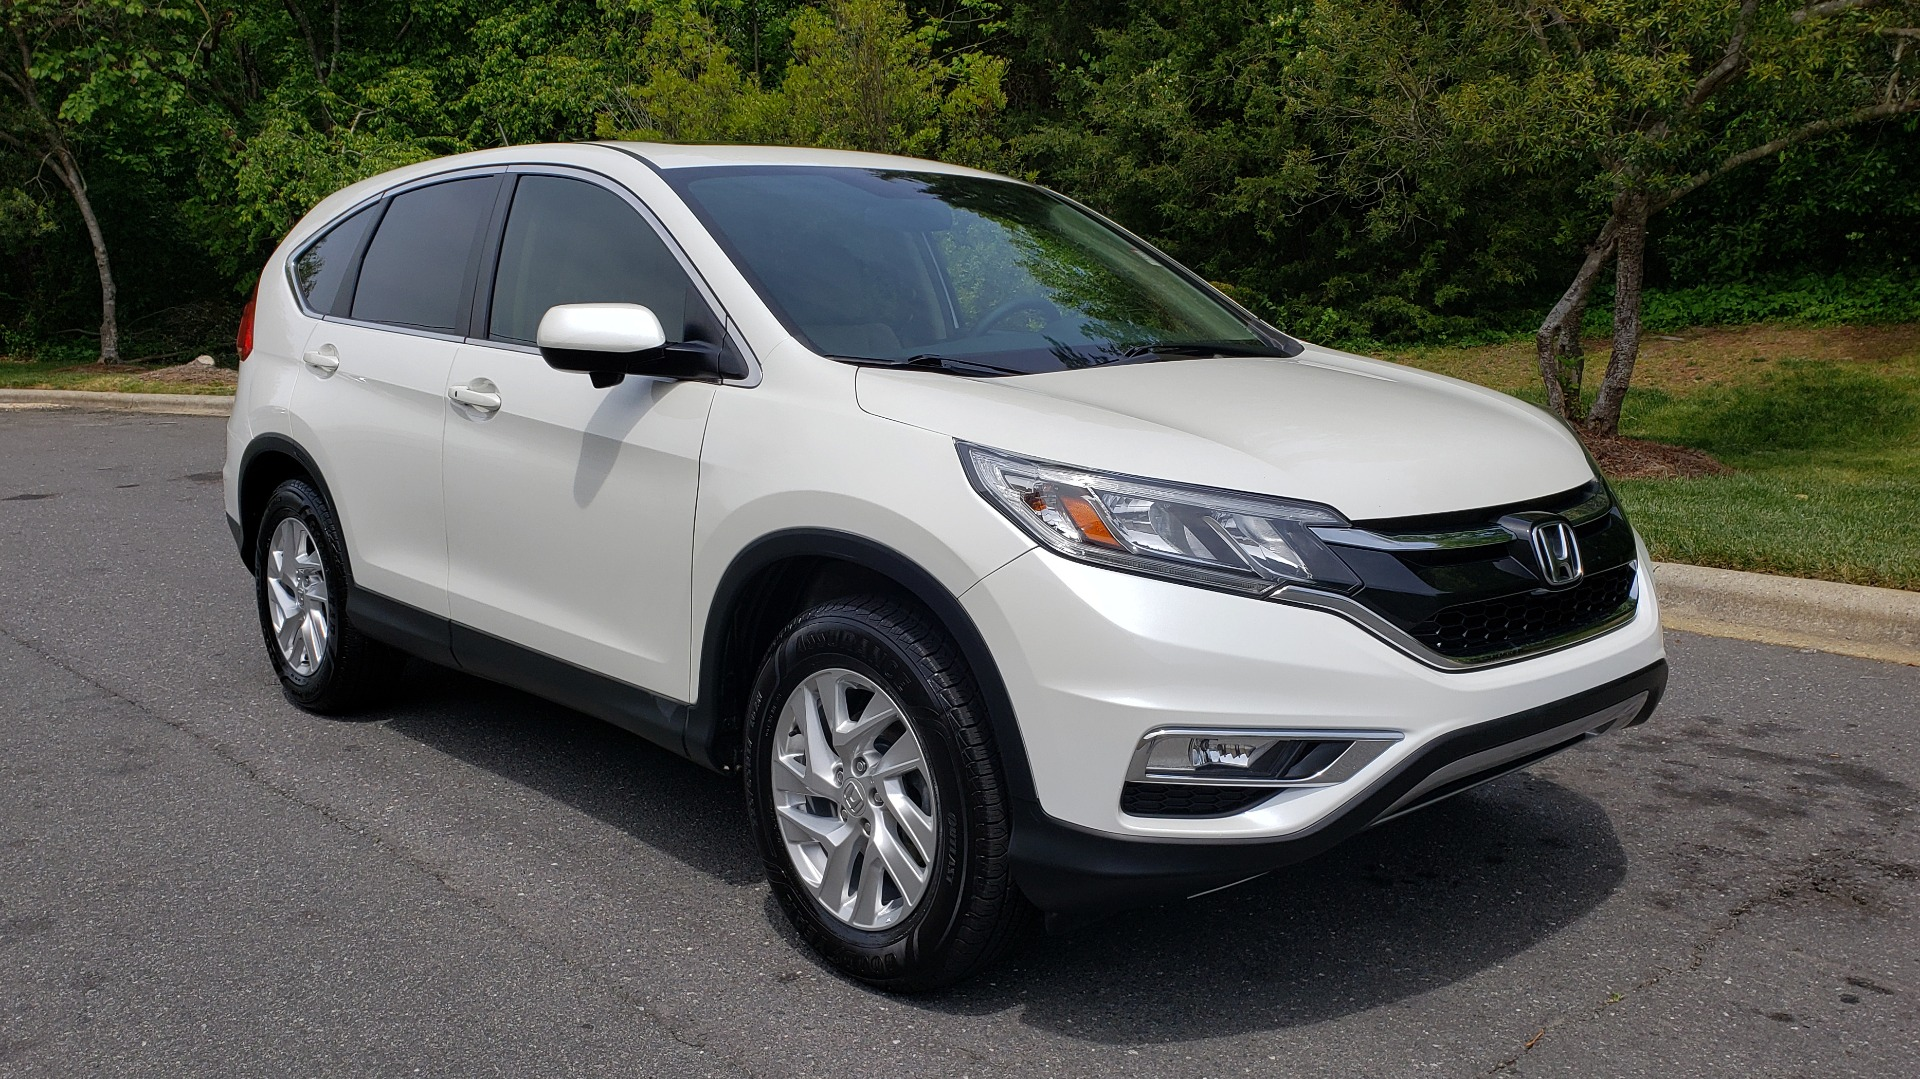 Used 2016 Honda CR-V EX / SUNROOF / 4-CYL / AUTO / 17IN ALLOY WHEELS for sale Sold at Formula Imports in Charlotte NC 28227 4